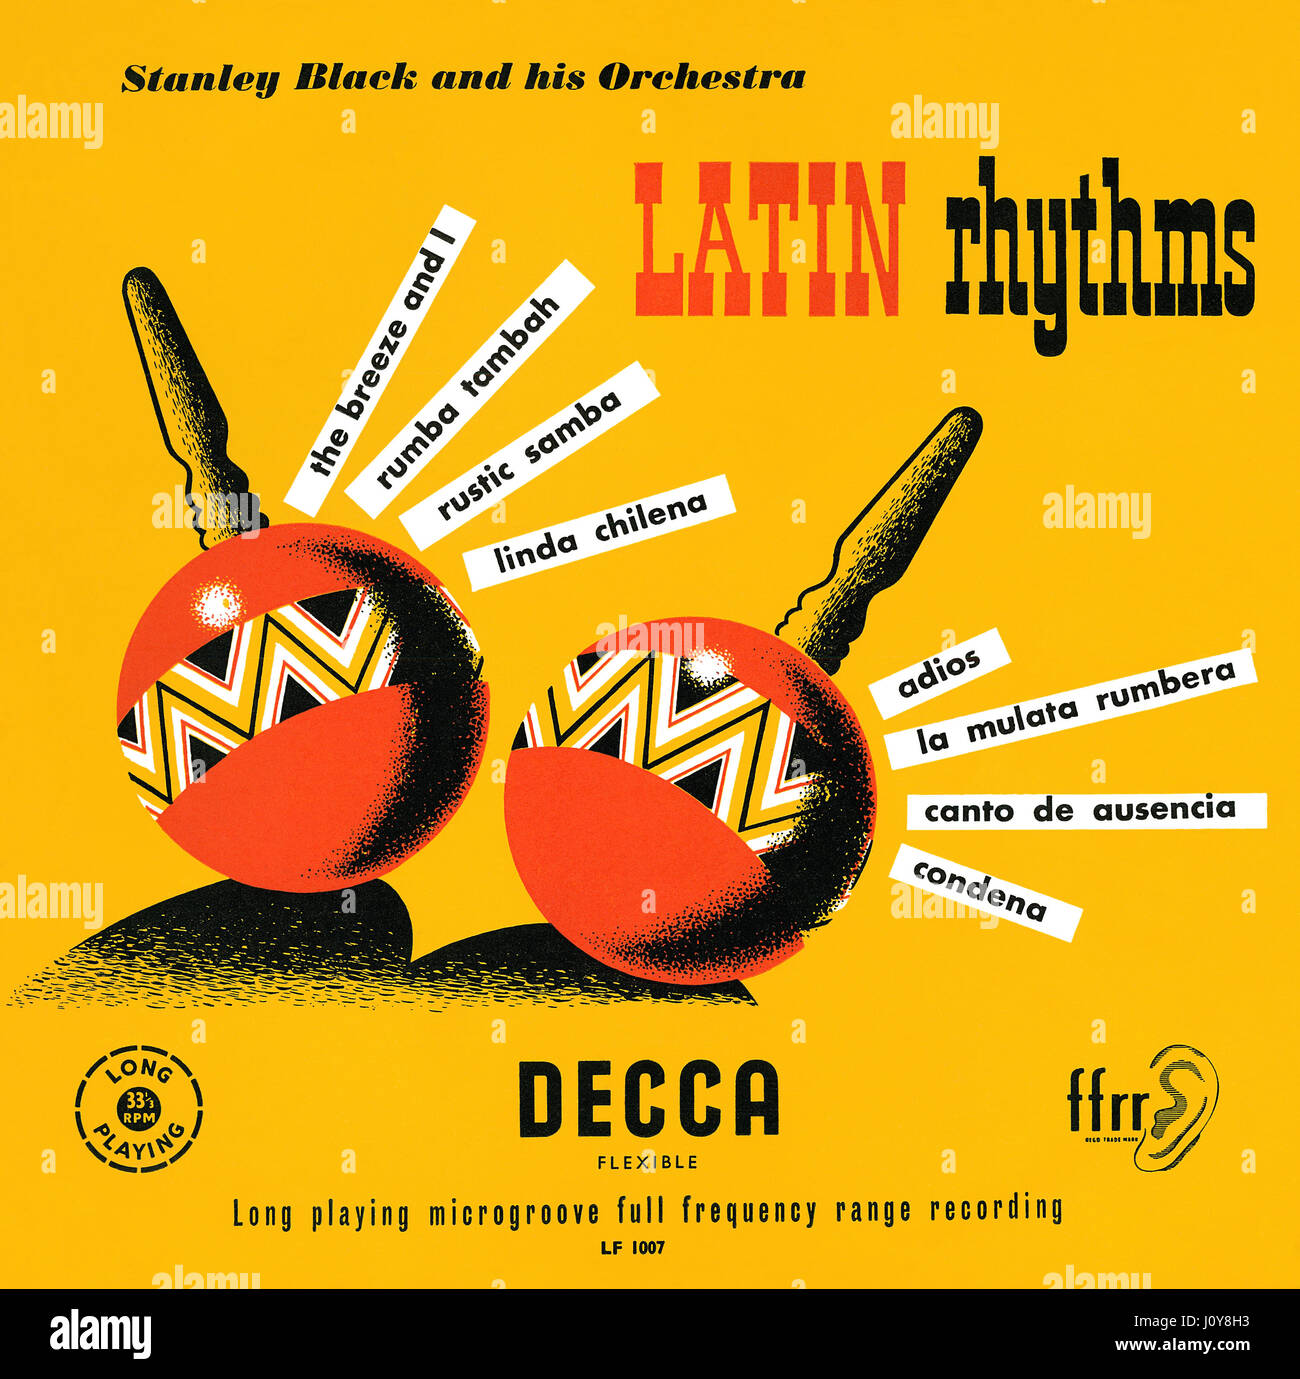 Front cover of the record sleeve for the Stanley Black and his Orchestra 10' LP Latin Rhythms. This vinyl album - Stock Image